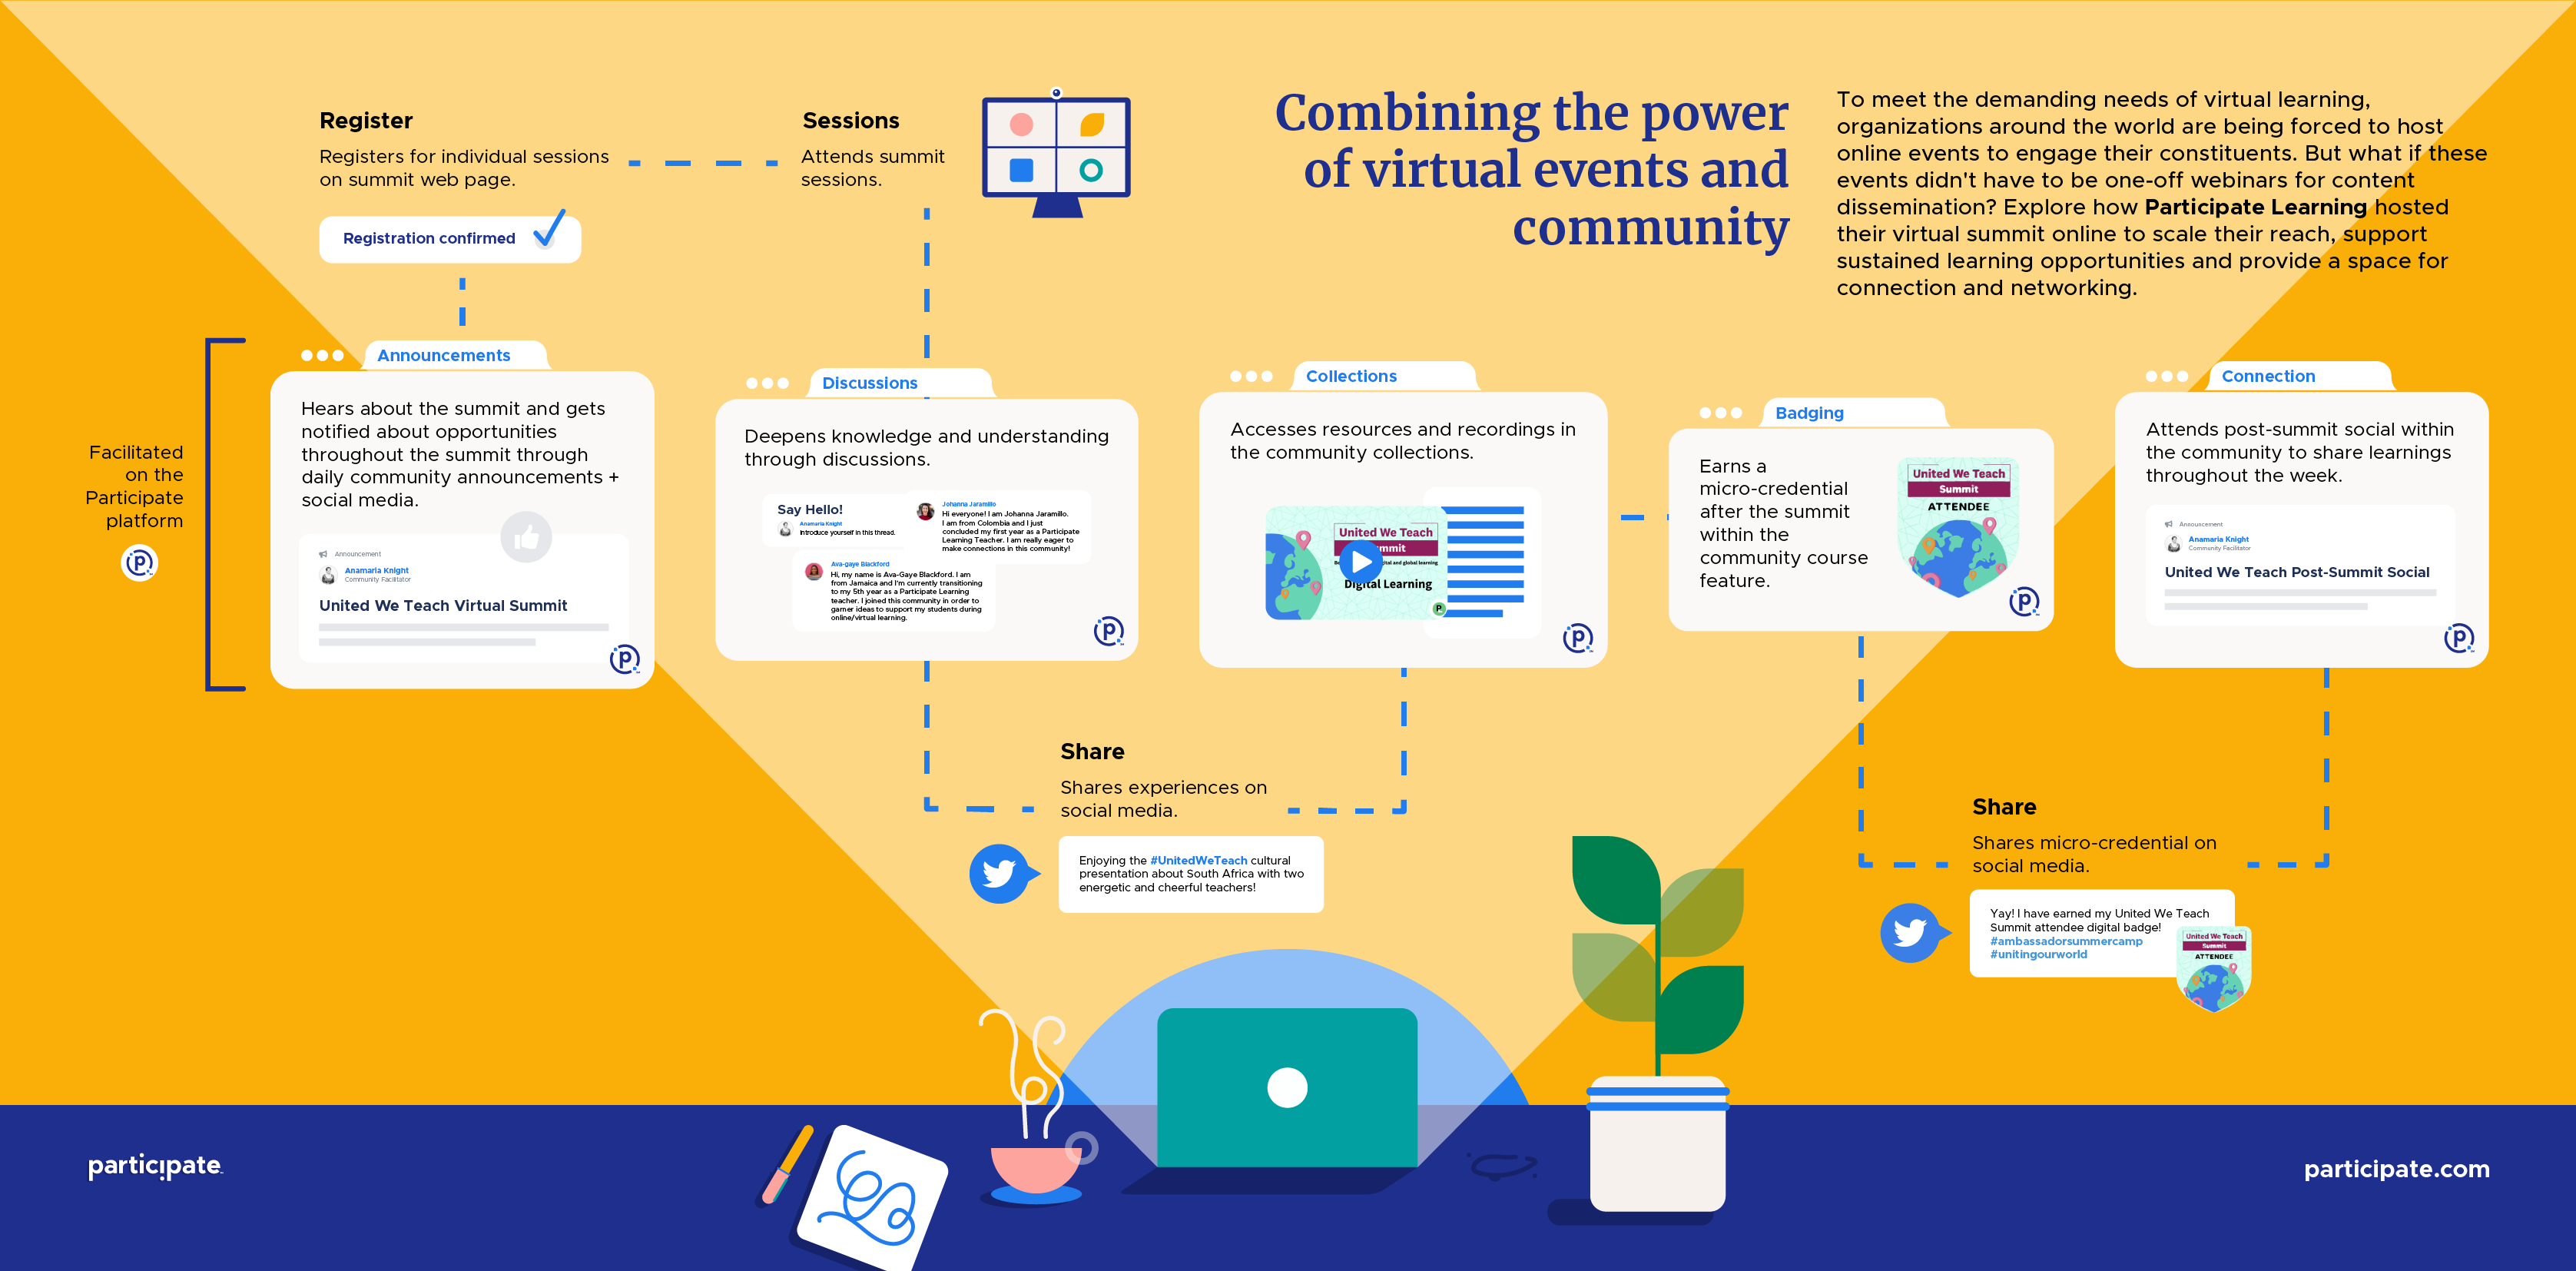 Combining the power of virtual events and community